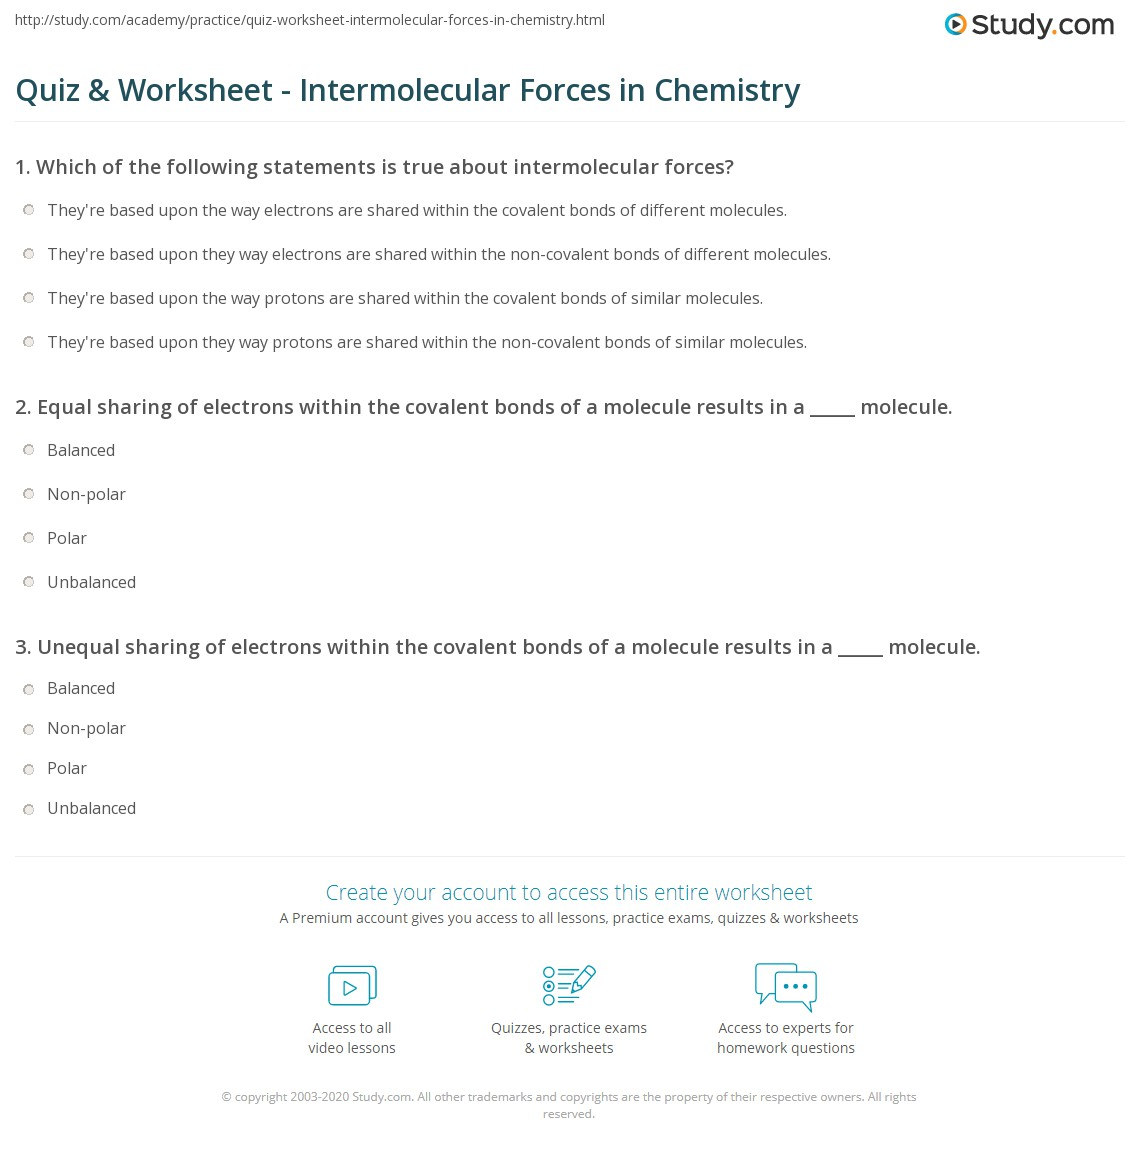 Worksheet Intermolecular Forces Worksheet quiz worksheet intermolecular forces in chemistry study com print definition types examples worksheet